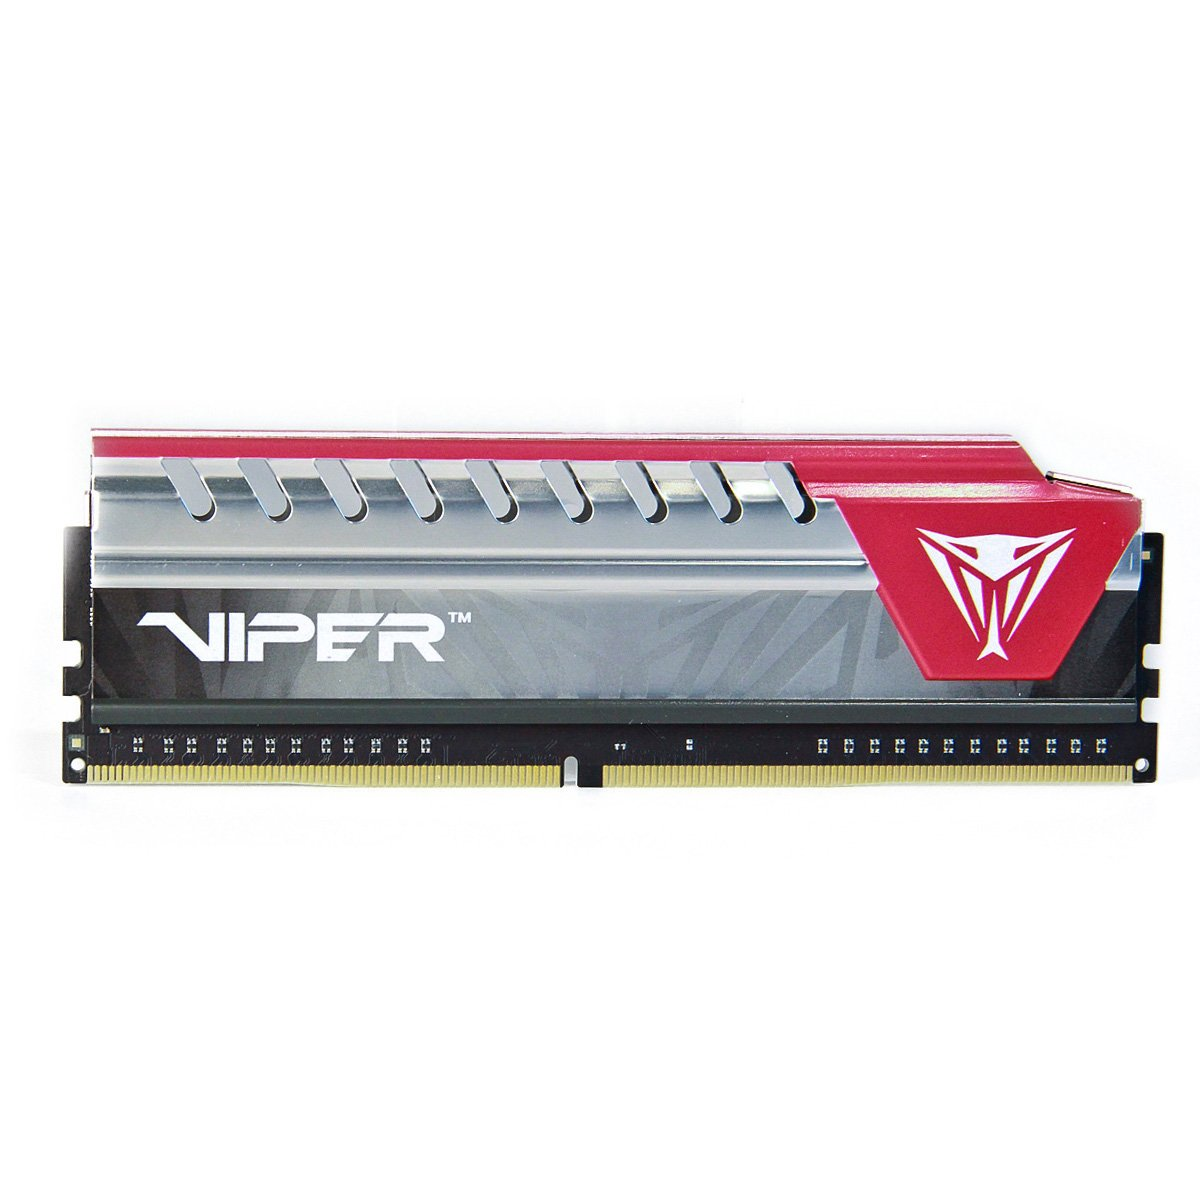 DDR4 Kit PC4-19200 2400MHZ Patriot Viper Elite PVE48G240C5KRD Extreme Performance 8GB 2 x 4GB Red